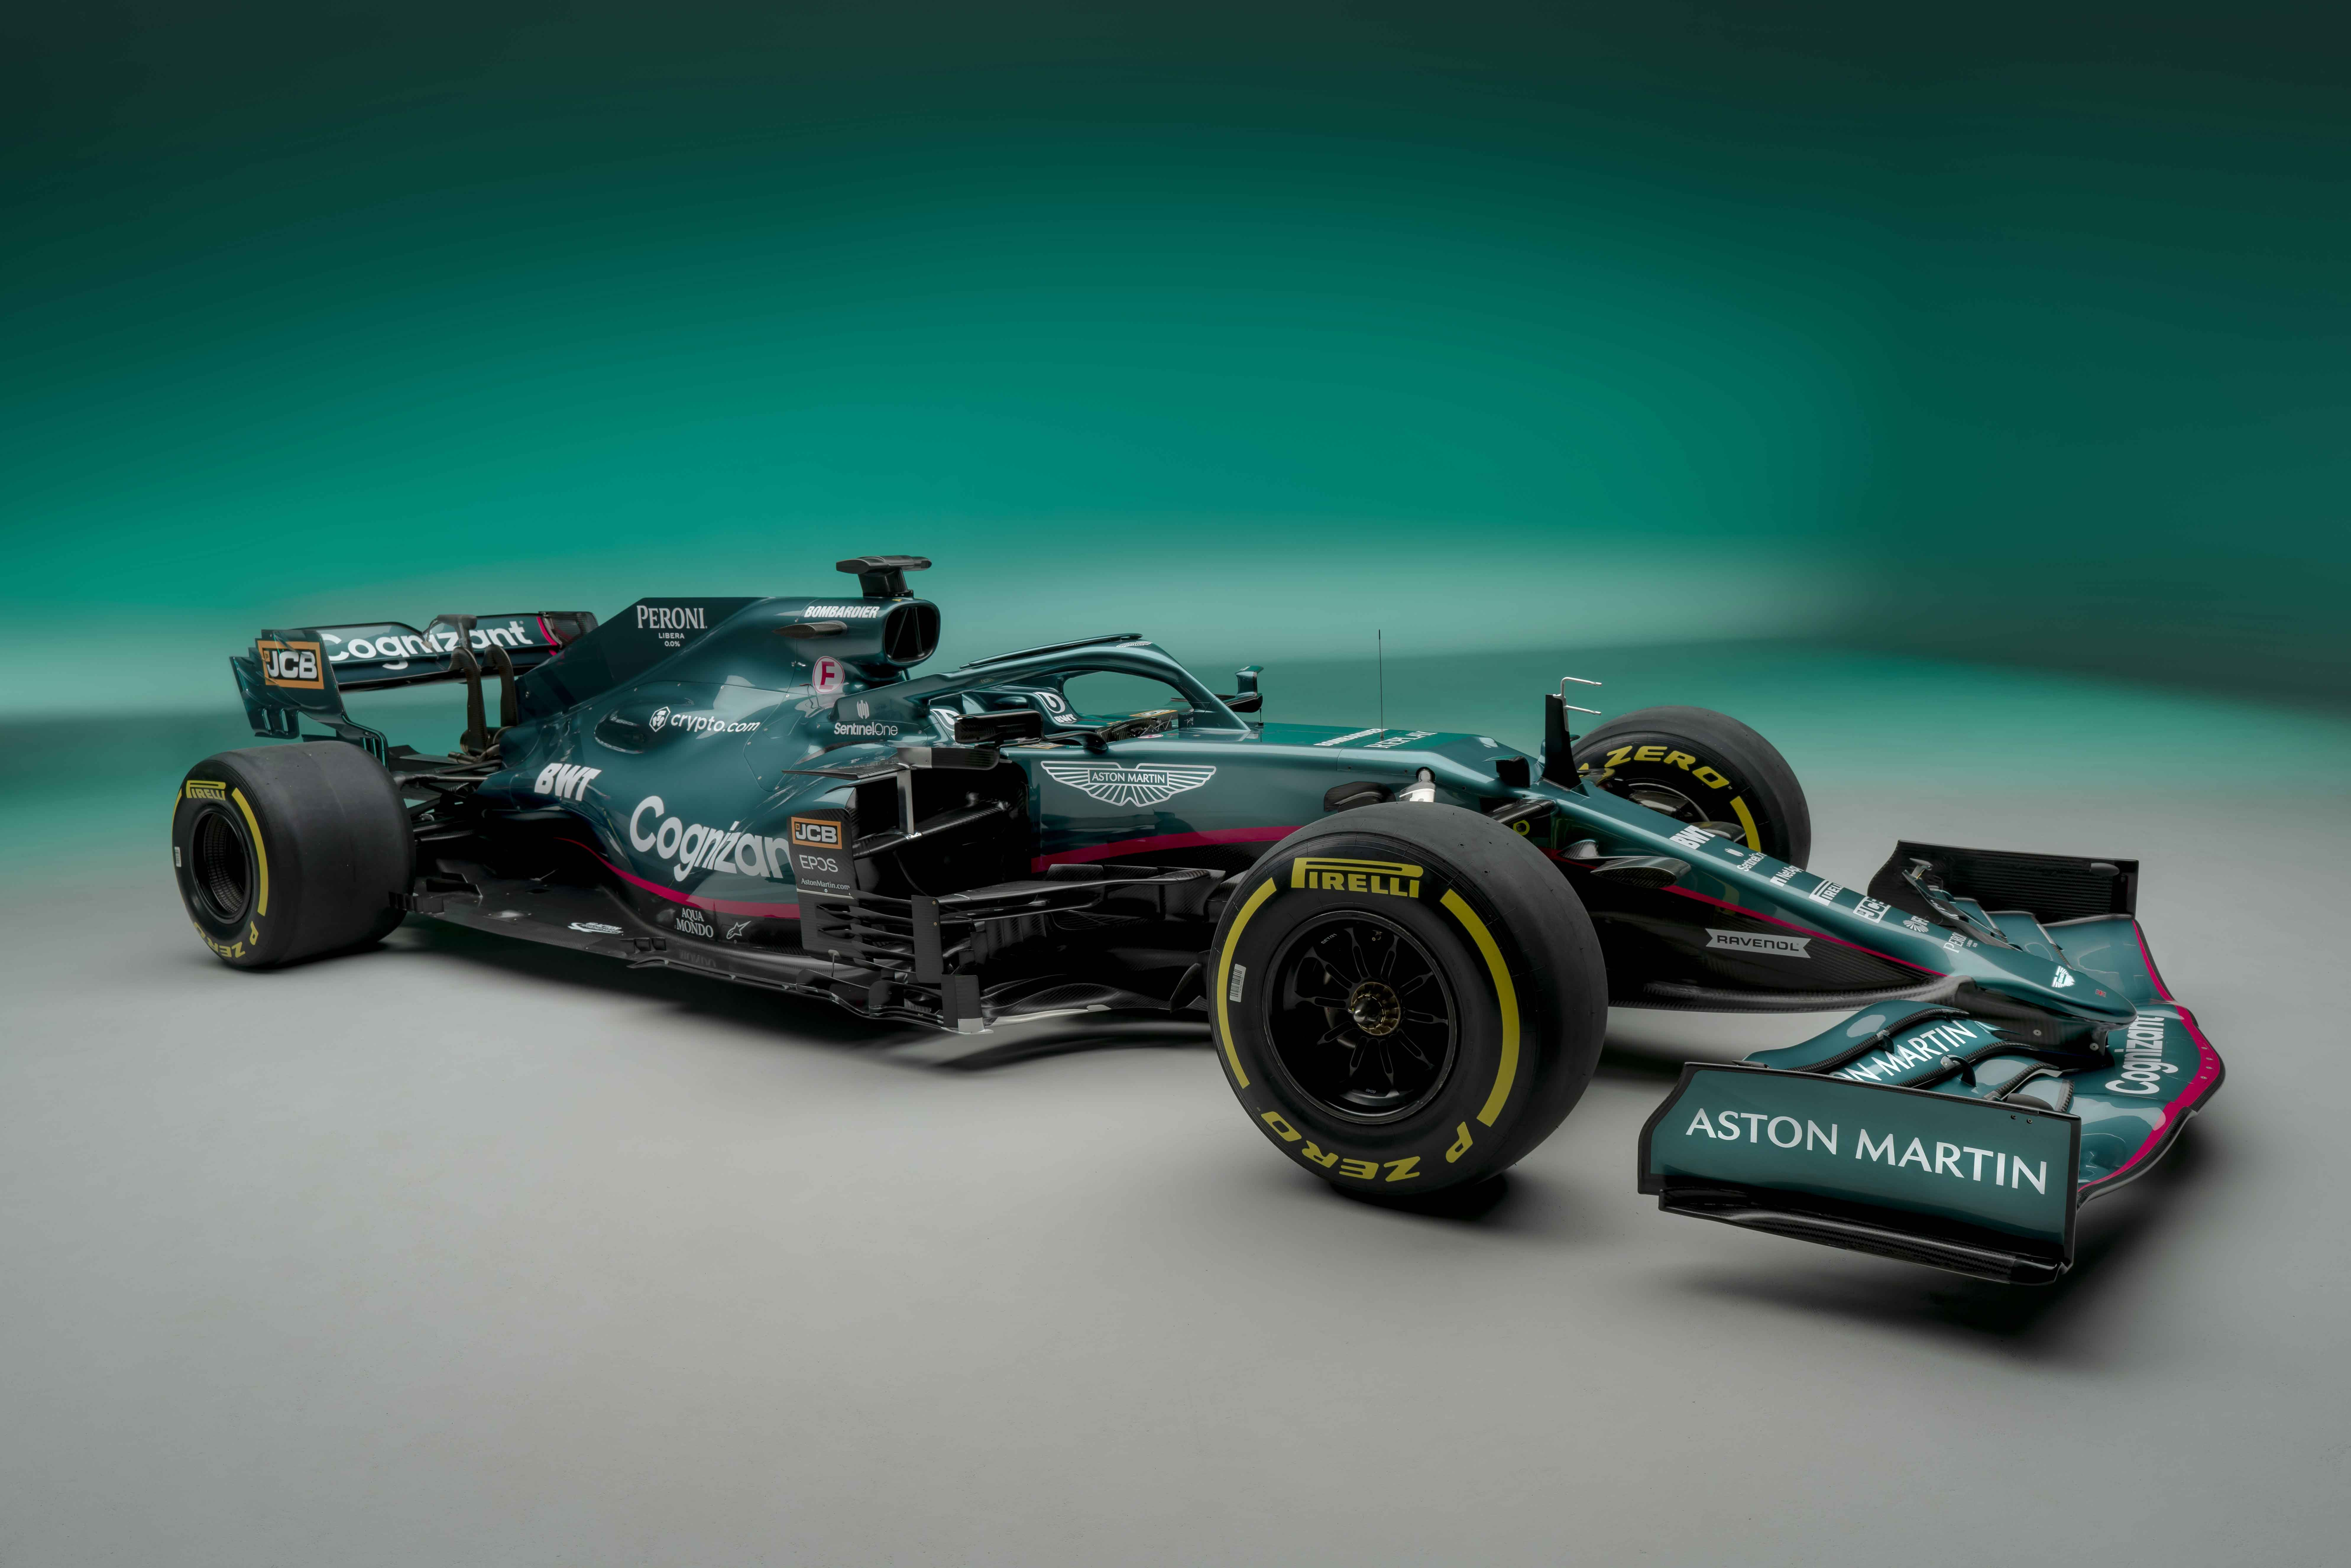 Aston Martin Begins New Era With Return To Formula One Tires Parts News